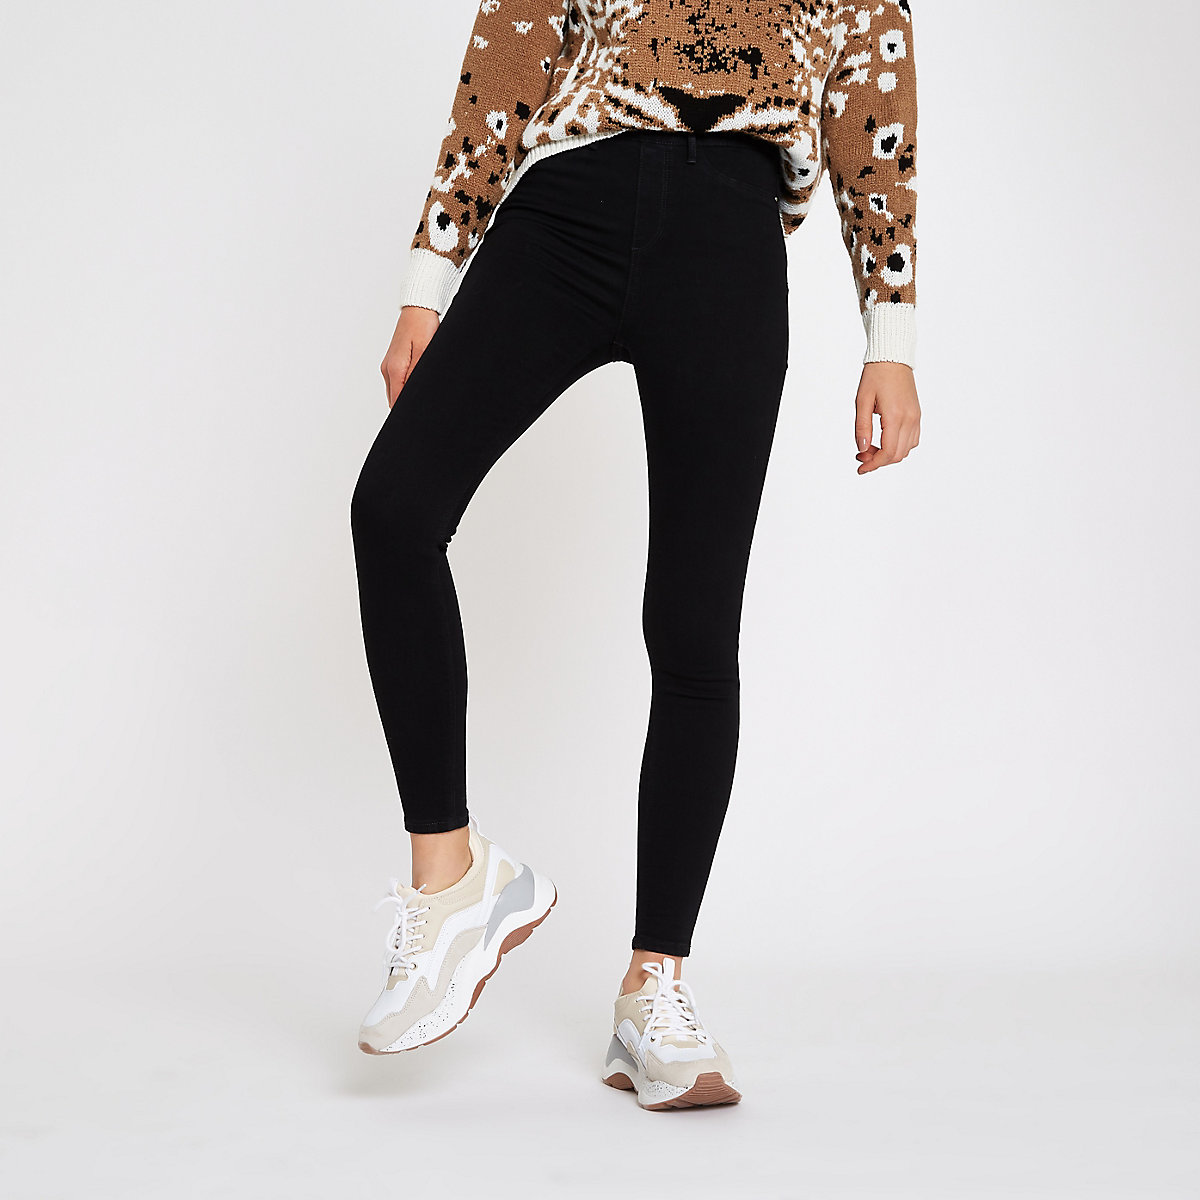 Black Cici pull on jeggings